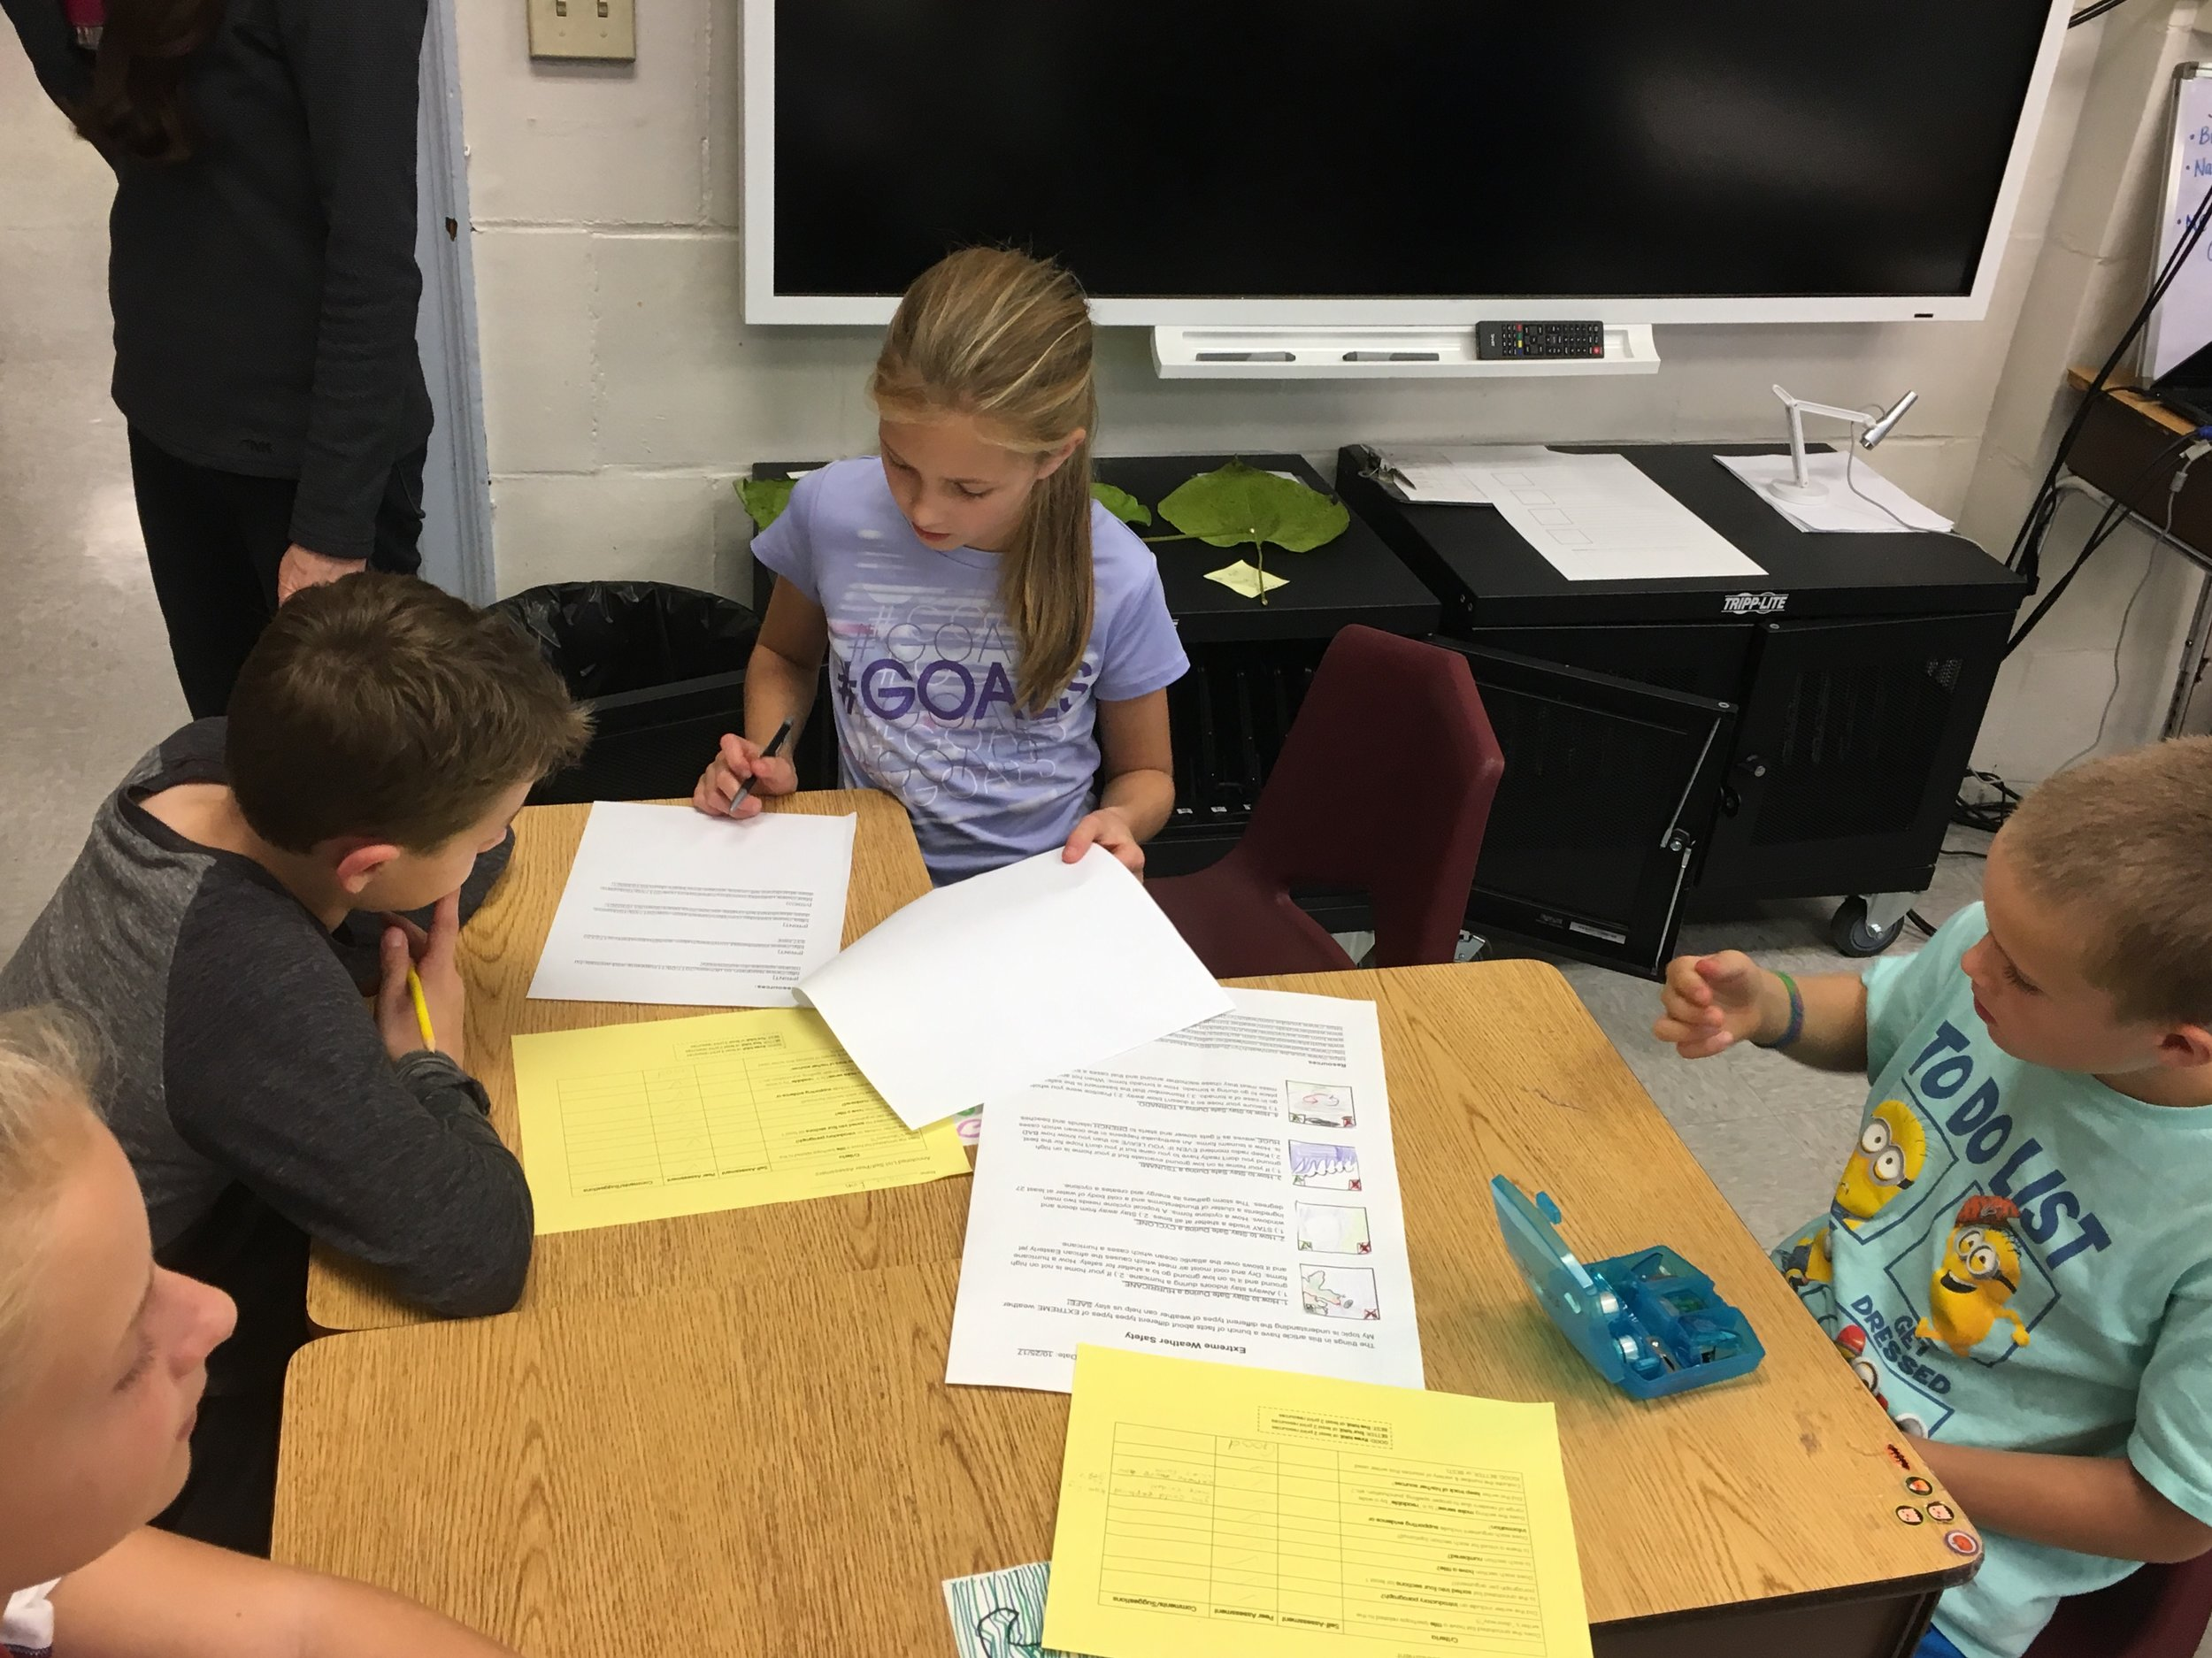 Students from a neighboring class offer feedback on students' annotated lists.